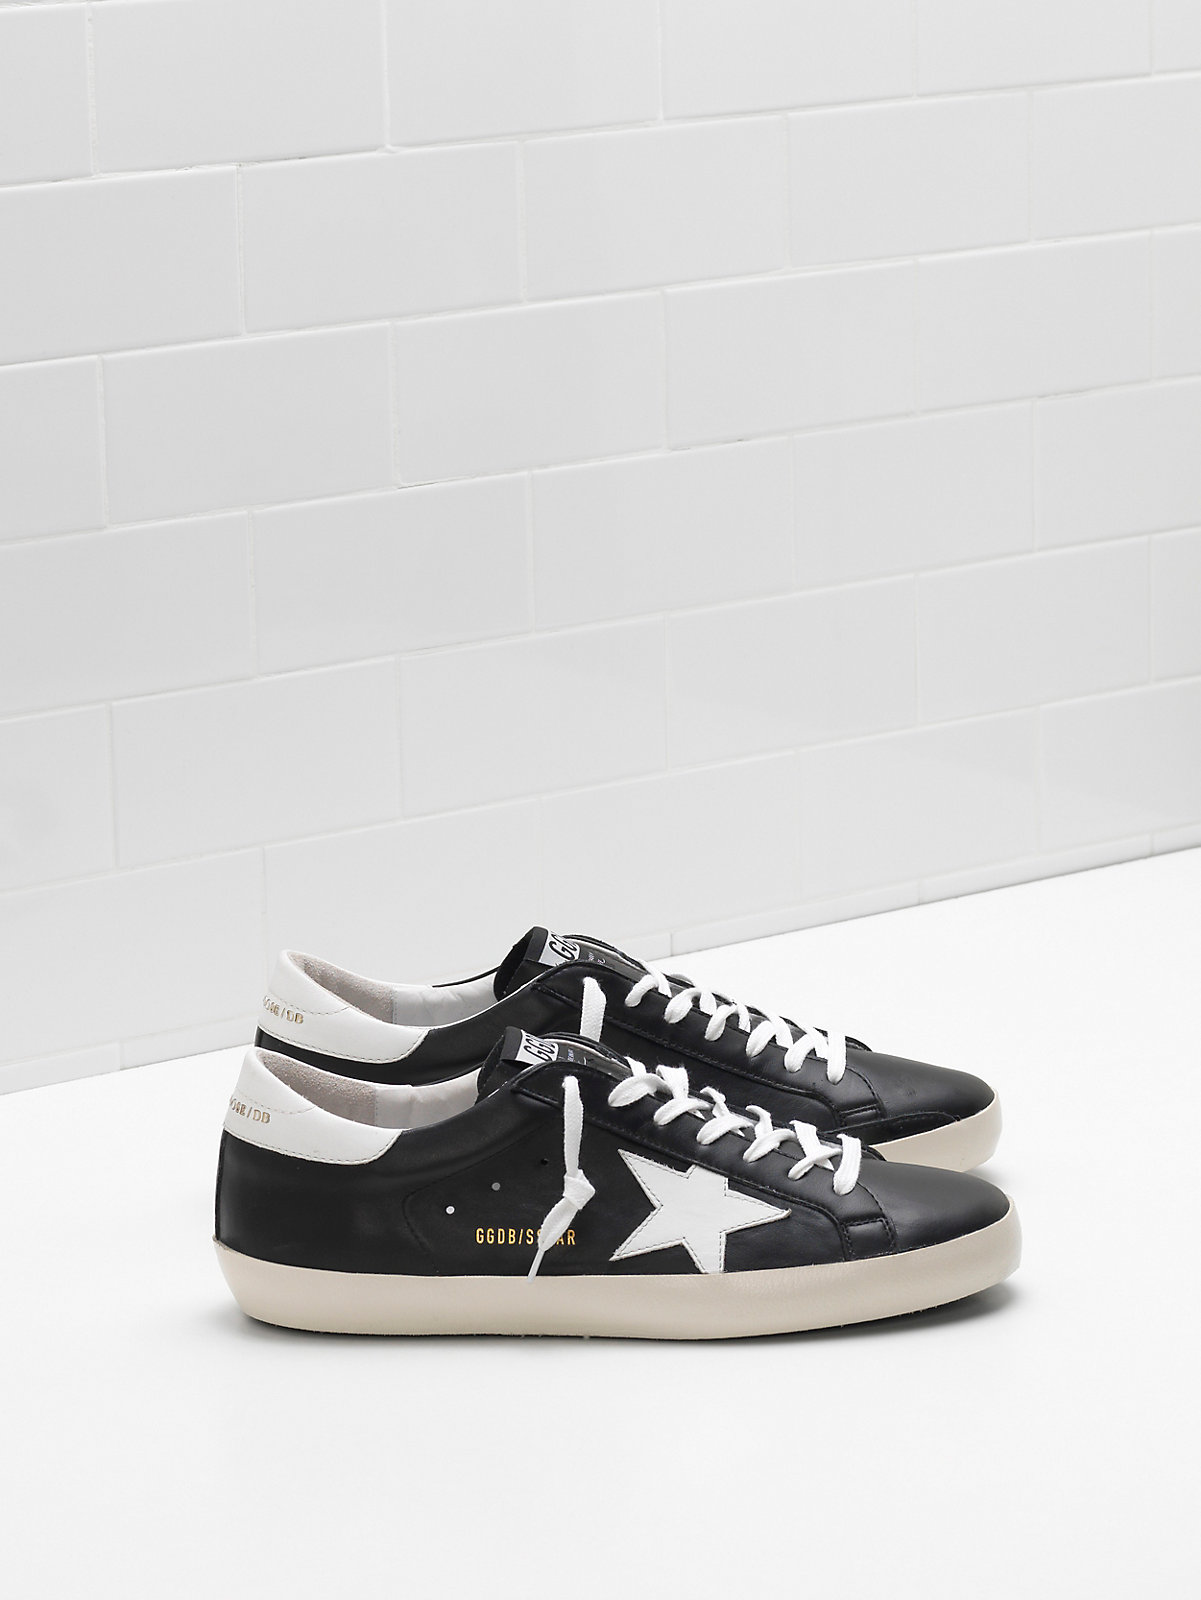 Golden Goose Sneaker Styles Without The